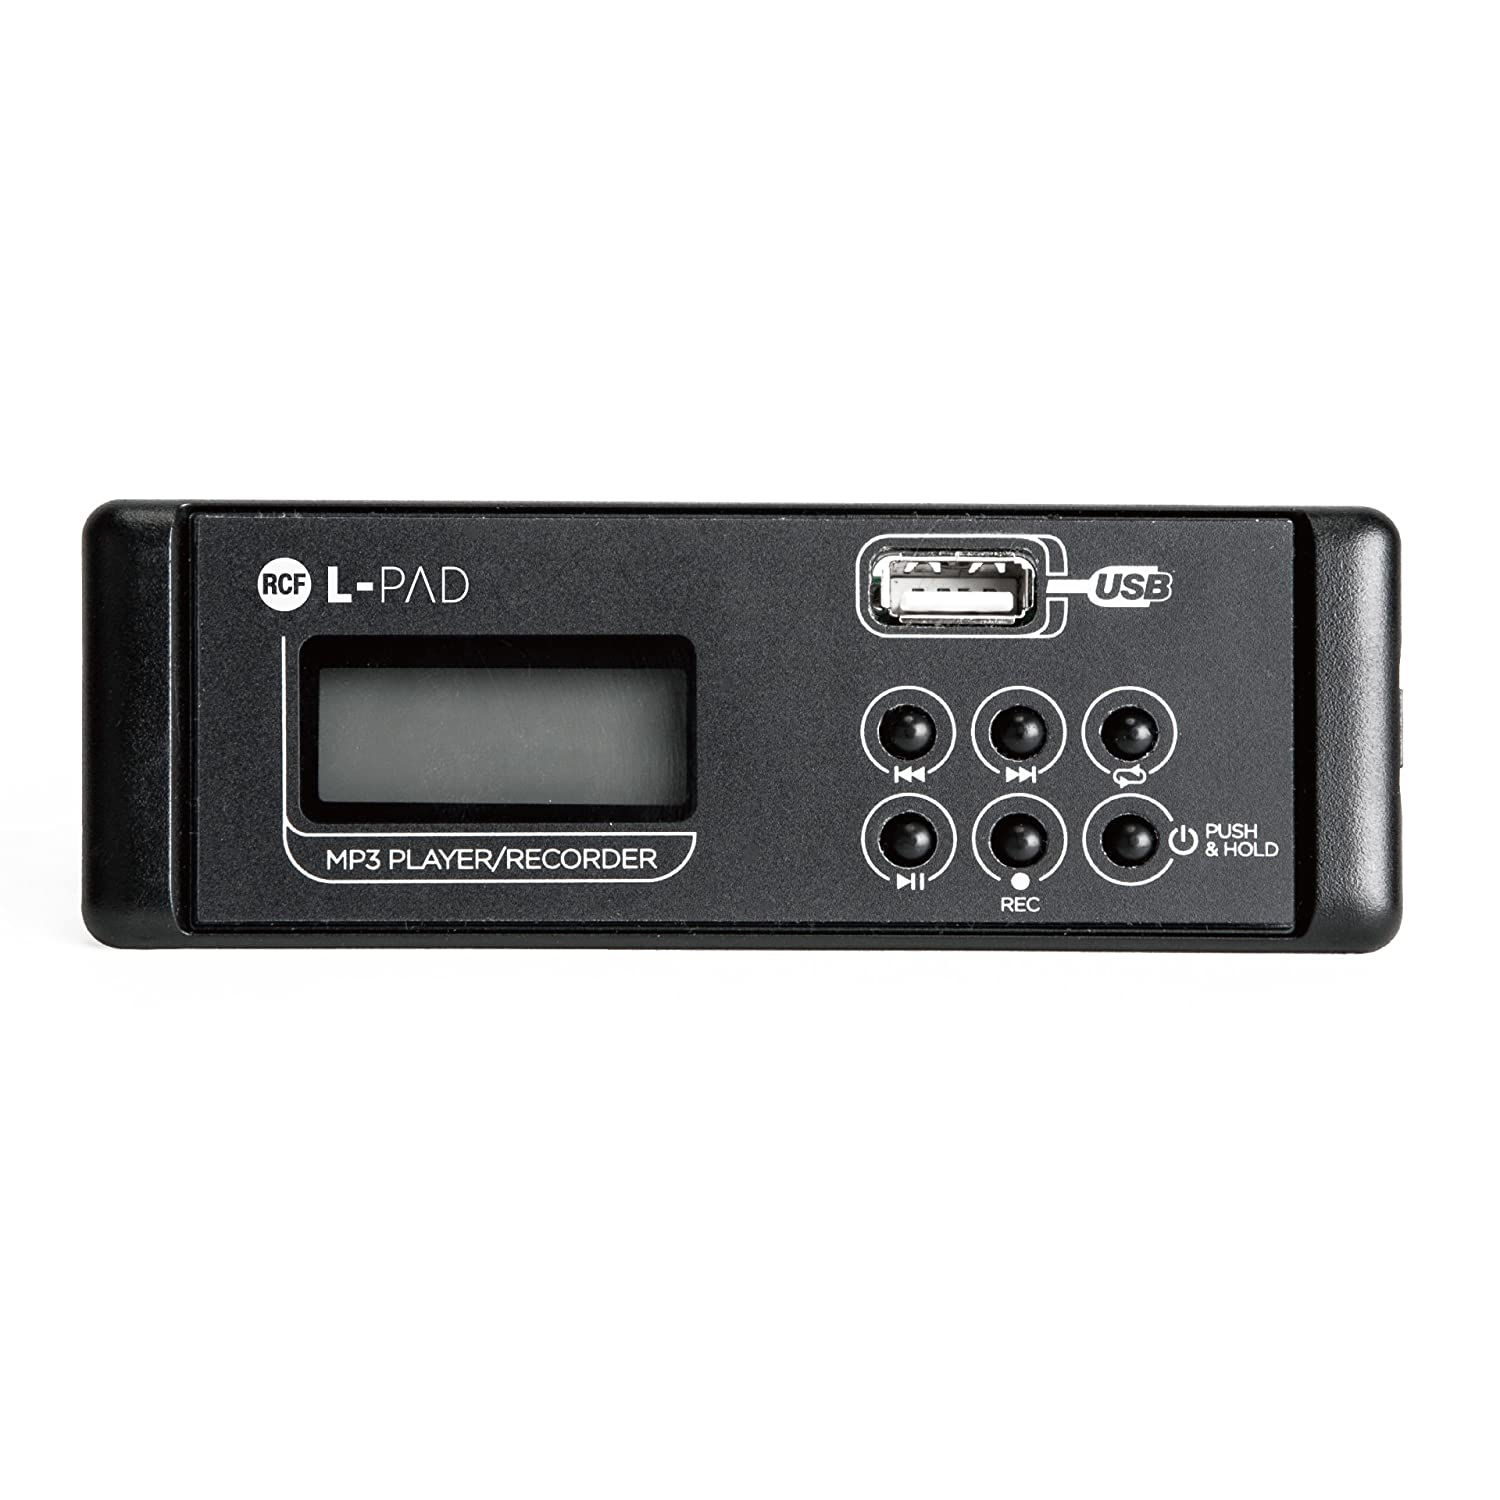 RCF LPAD-MP3-R MP3 Player/Recorder Card сетевой фильтр power cube sisn black 10 garant 6 розеток 3 м черный